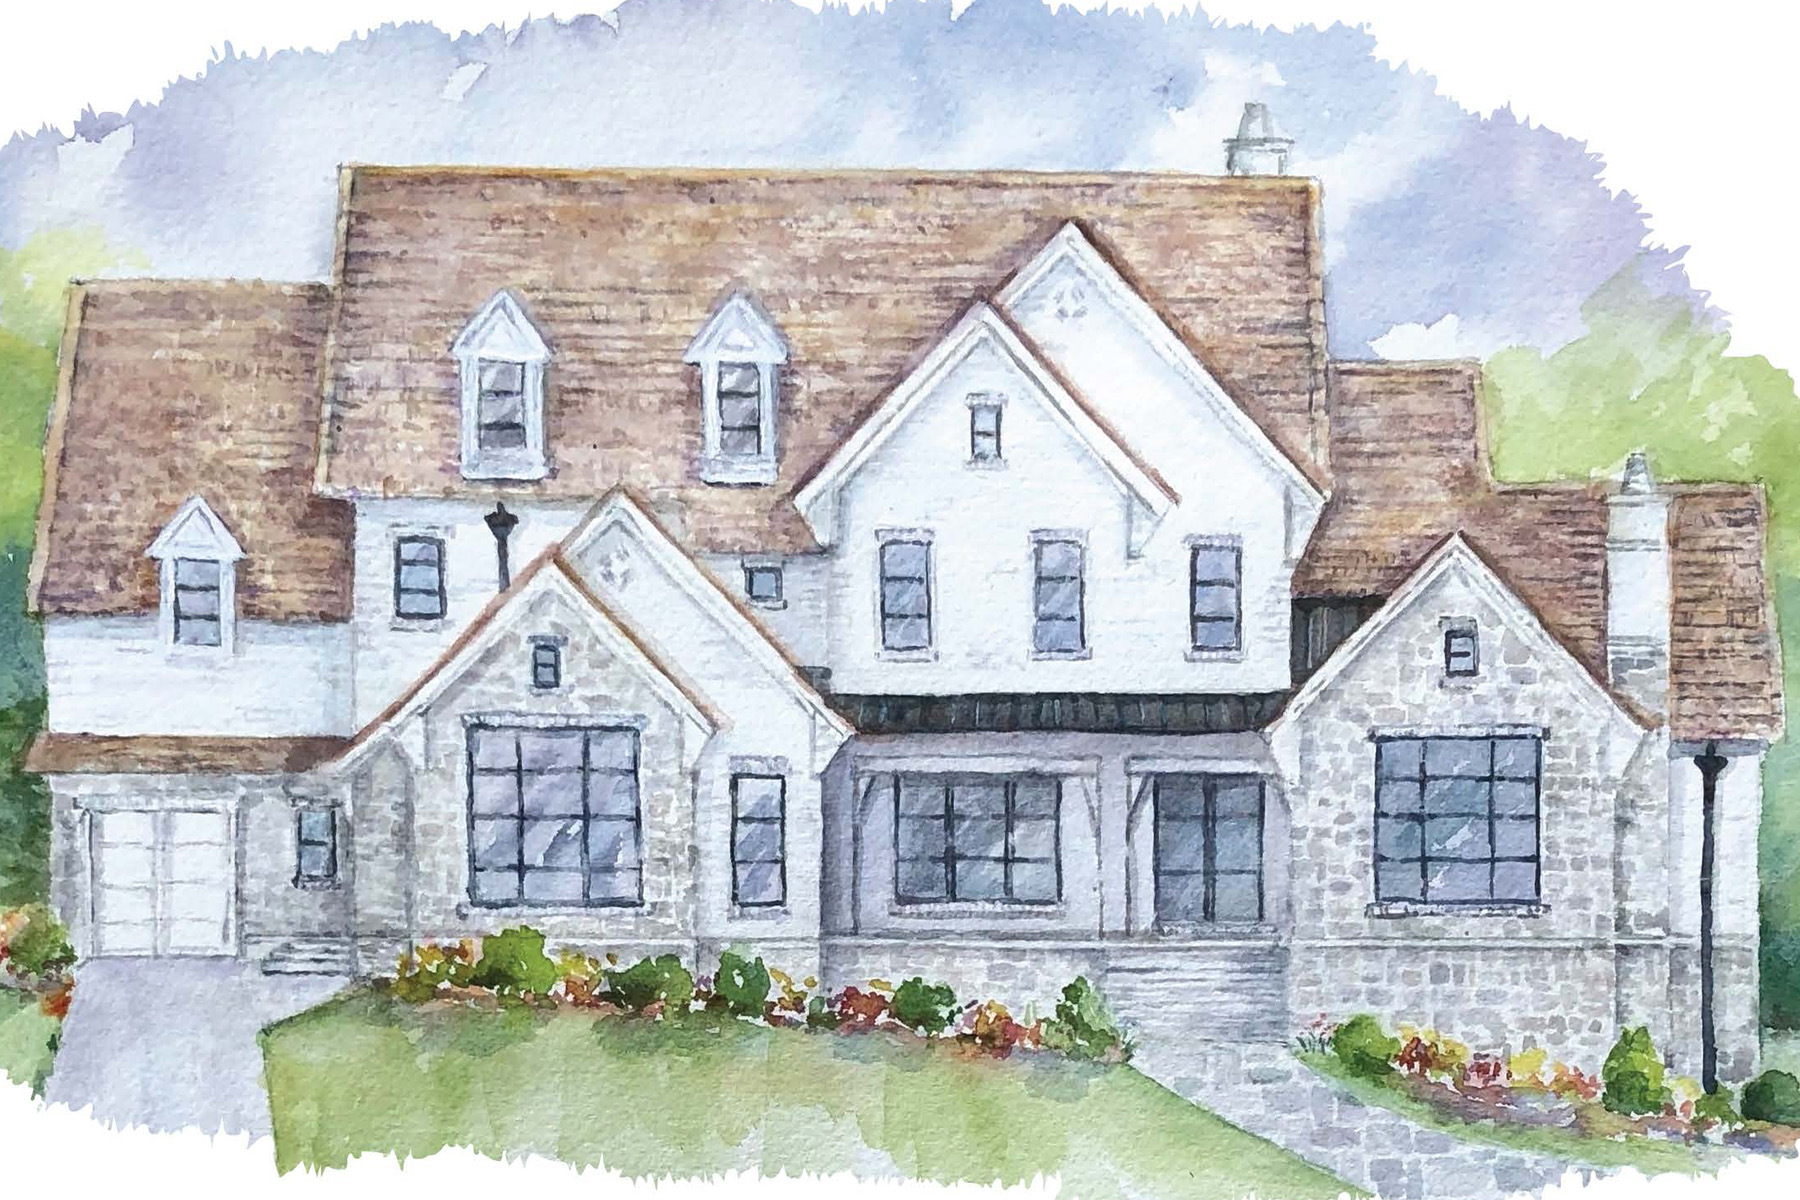 Single Family Homes for Sale at Stunning Stone And Painted Brick New Build 5110 Marbury Circle Sandy Springs, Georgia 30327 United States